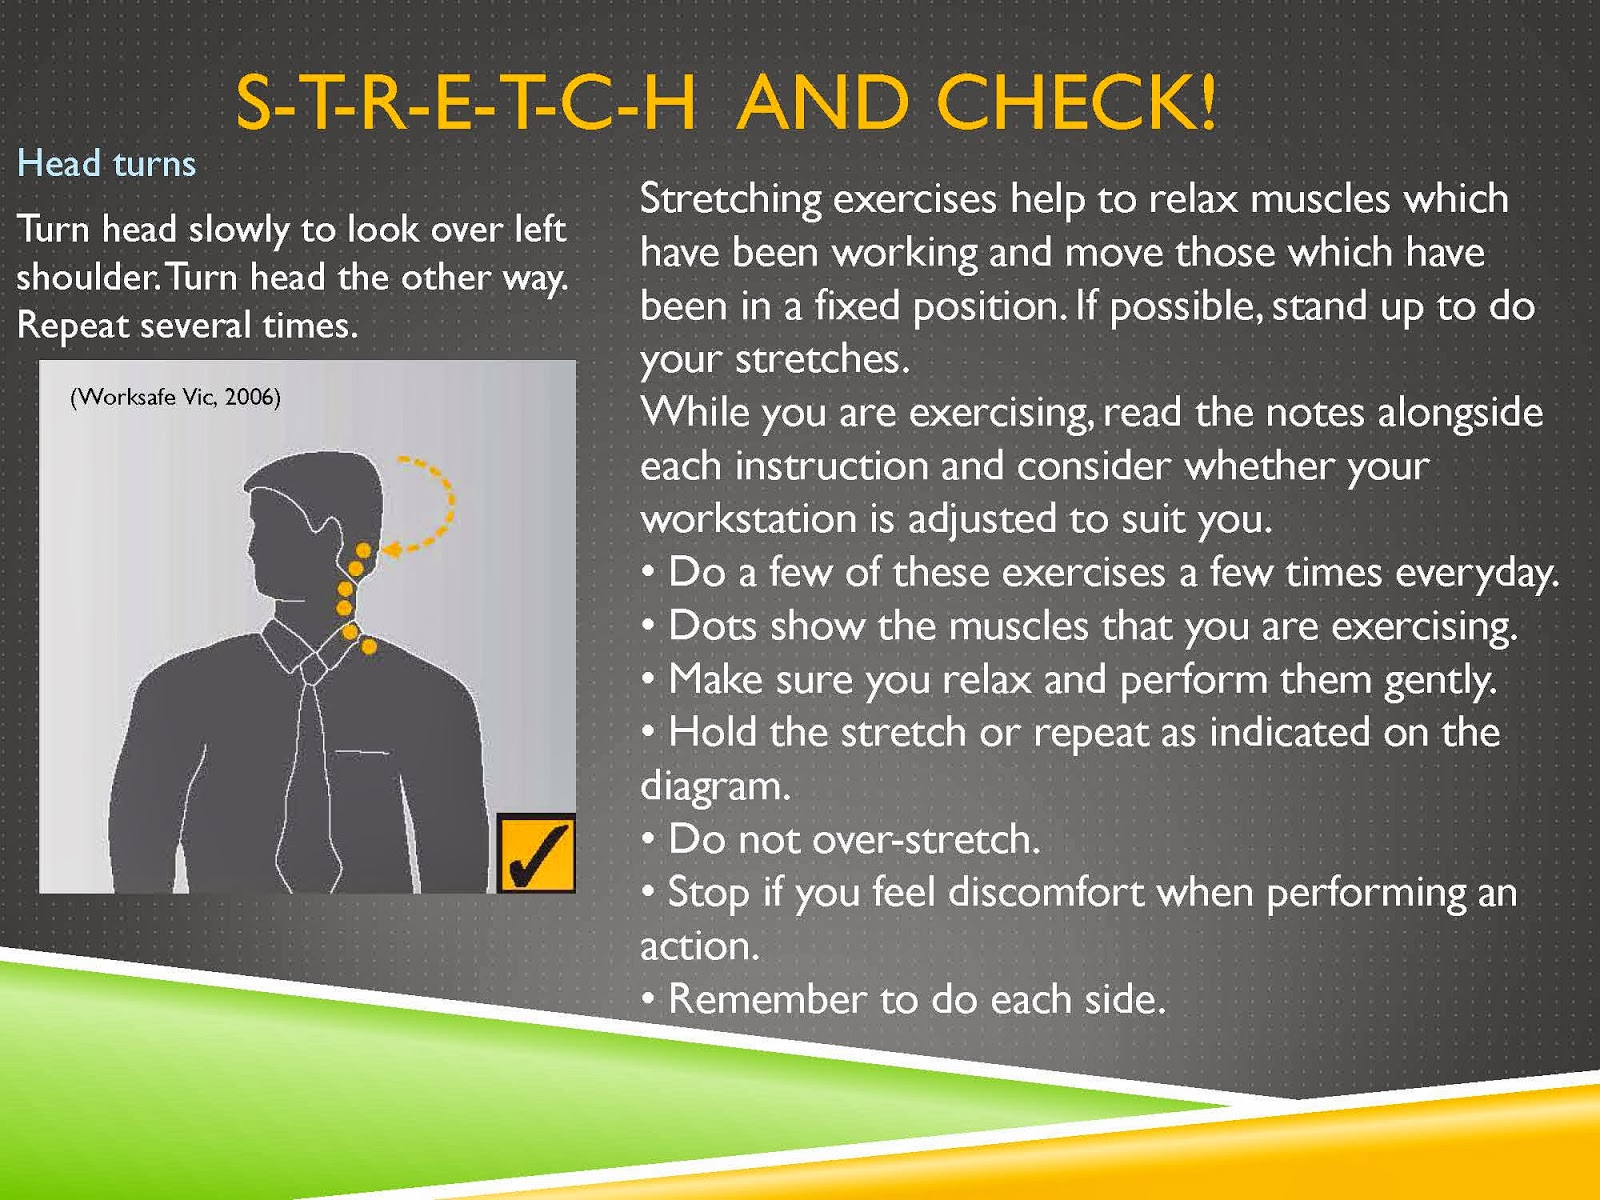 STRETCH AND CHECK